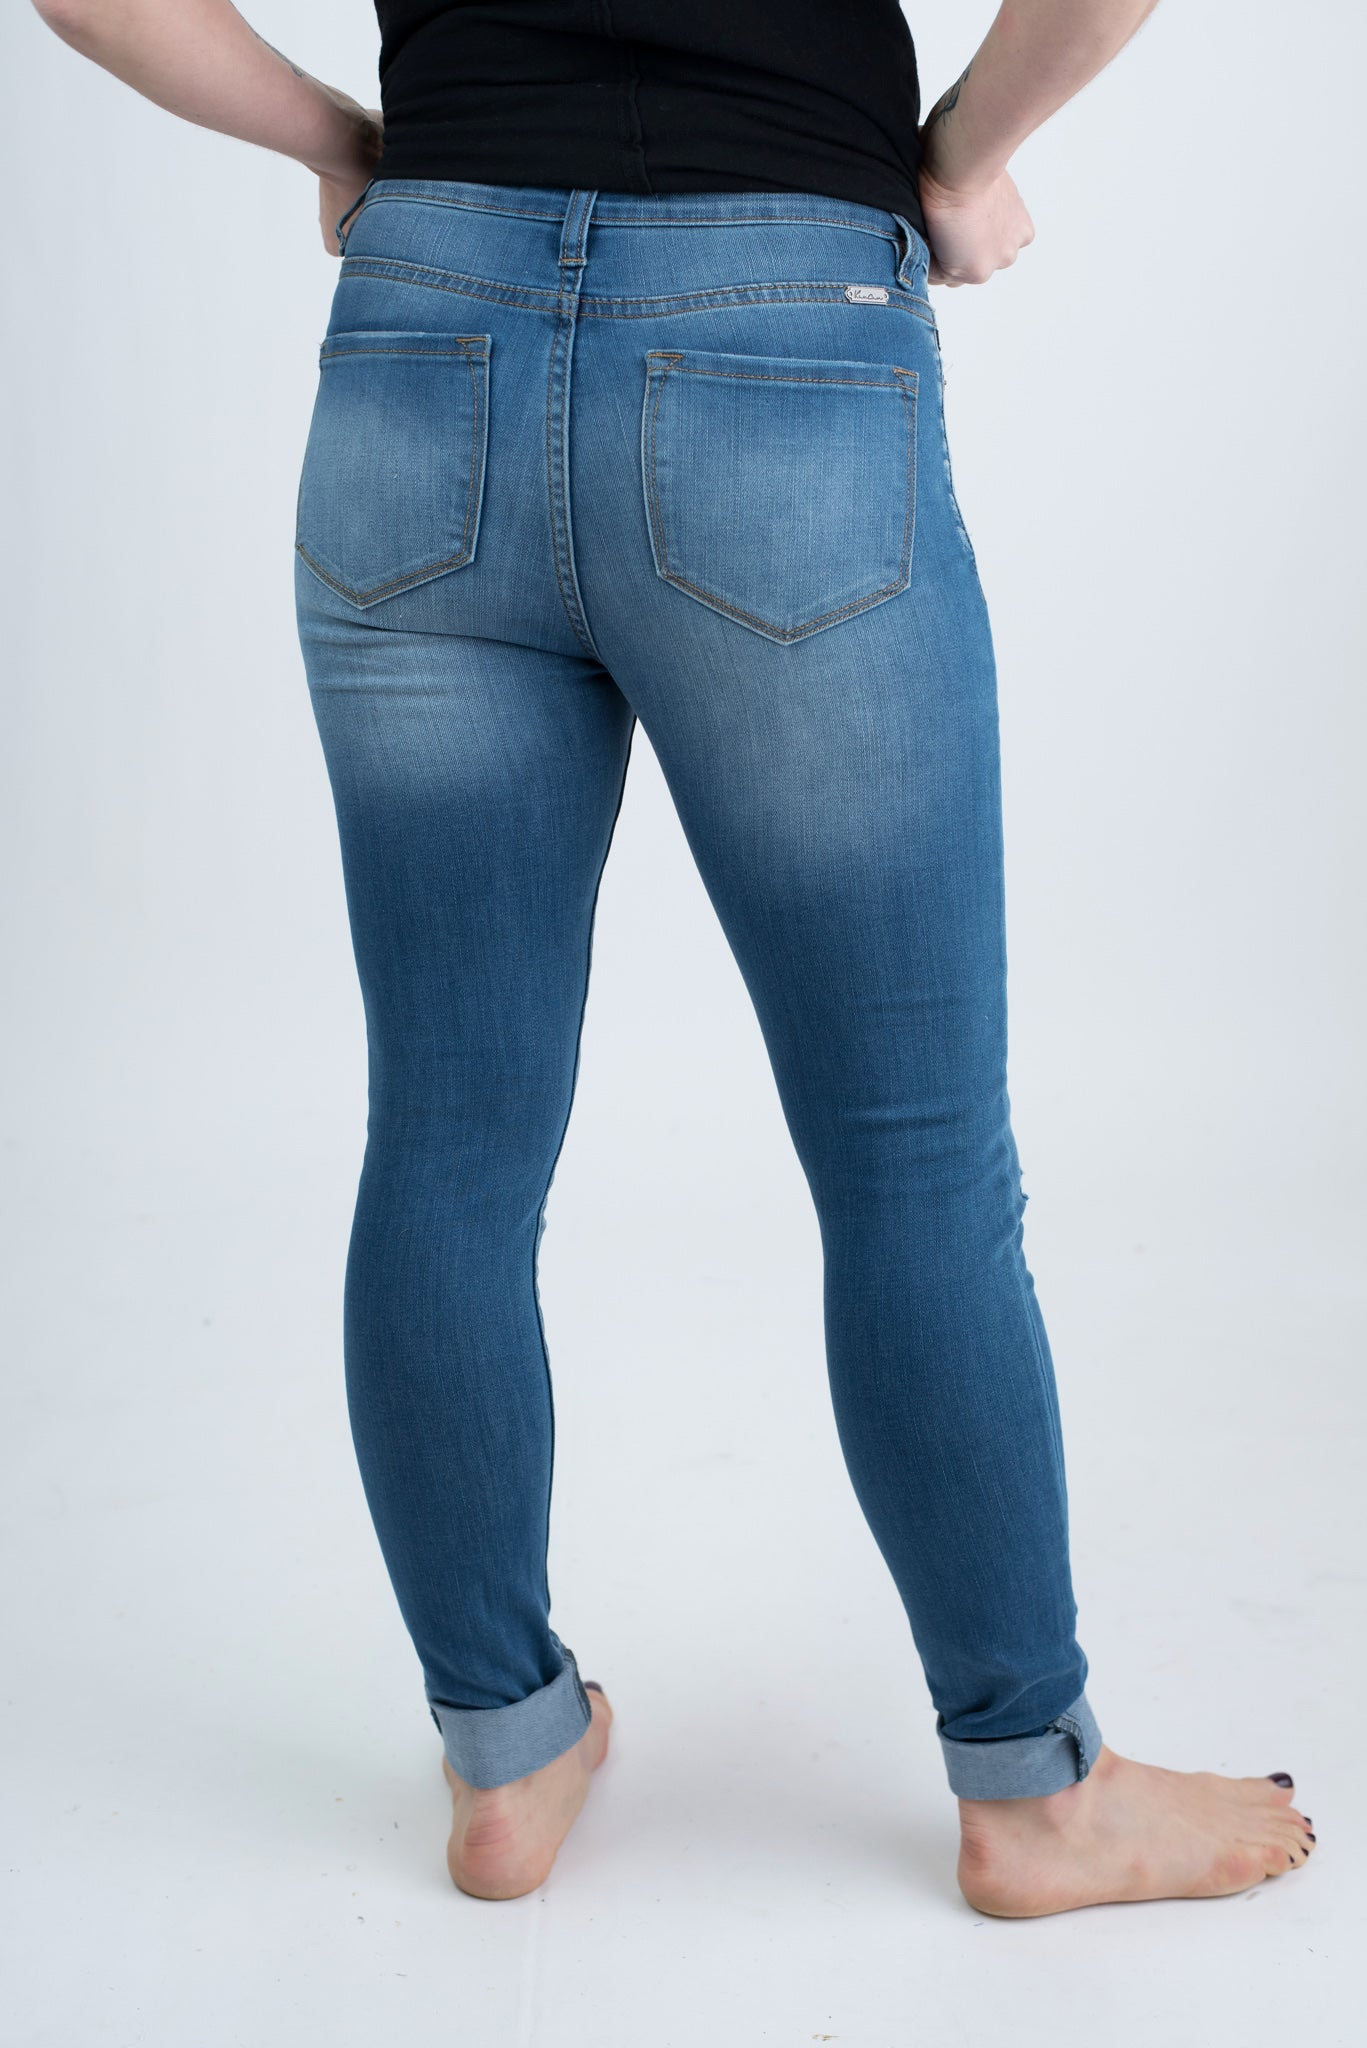 The Right Timing Knee Slit Medium Wash Skinny Jeans